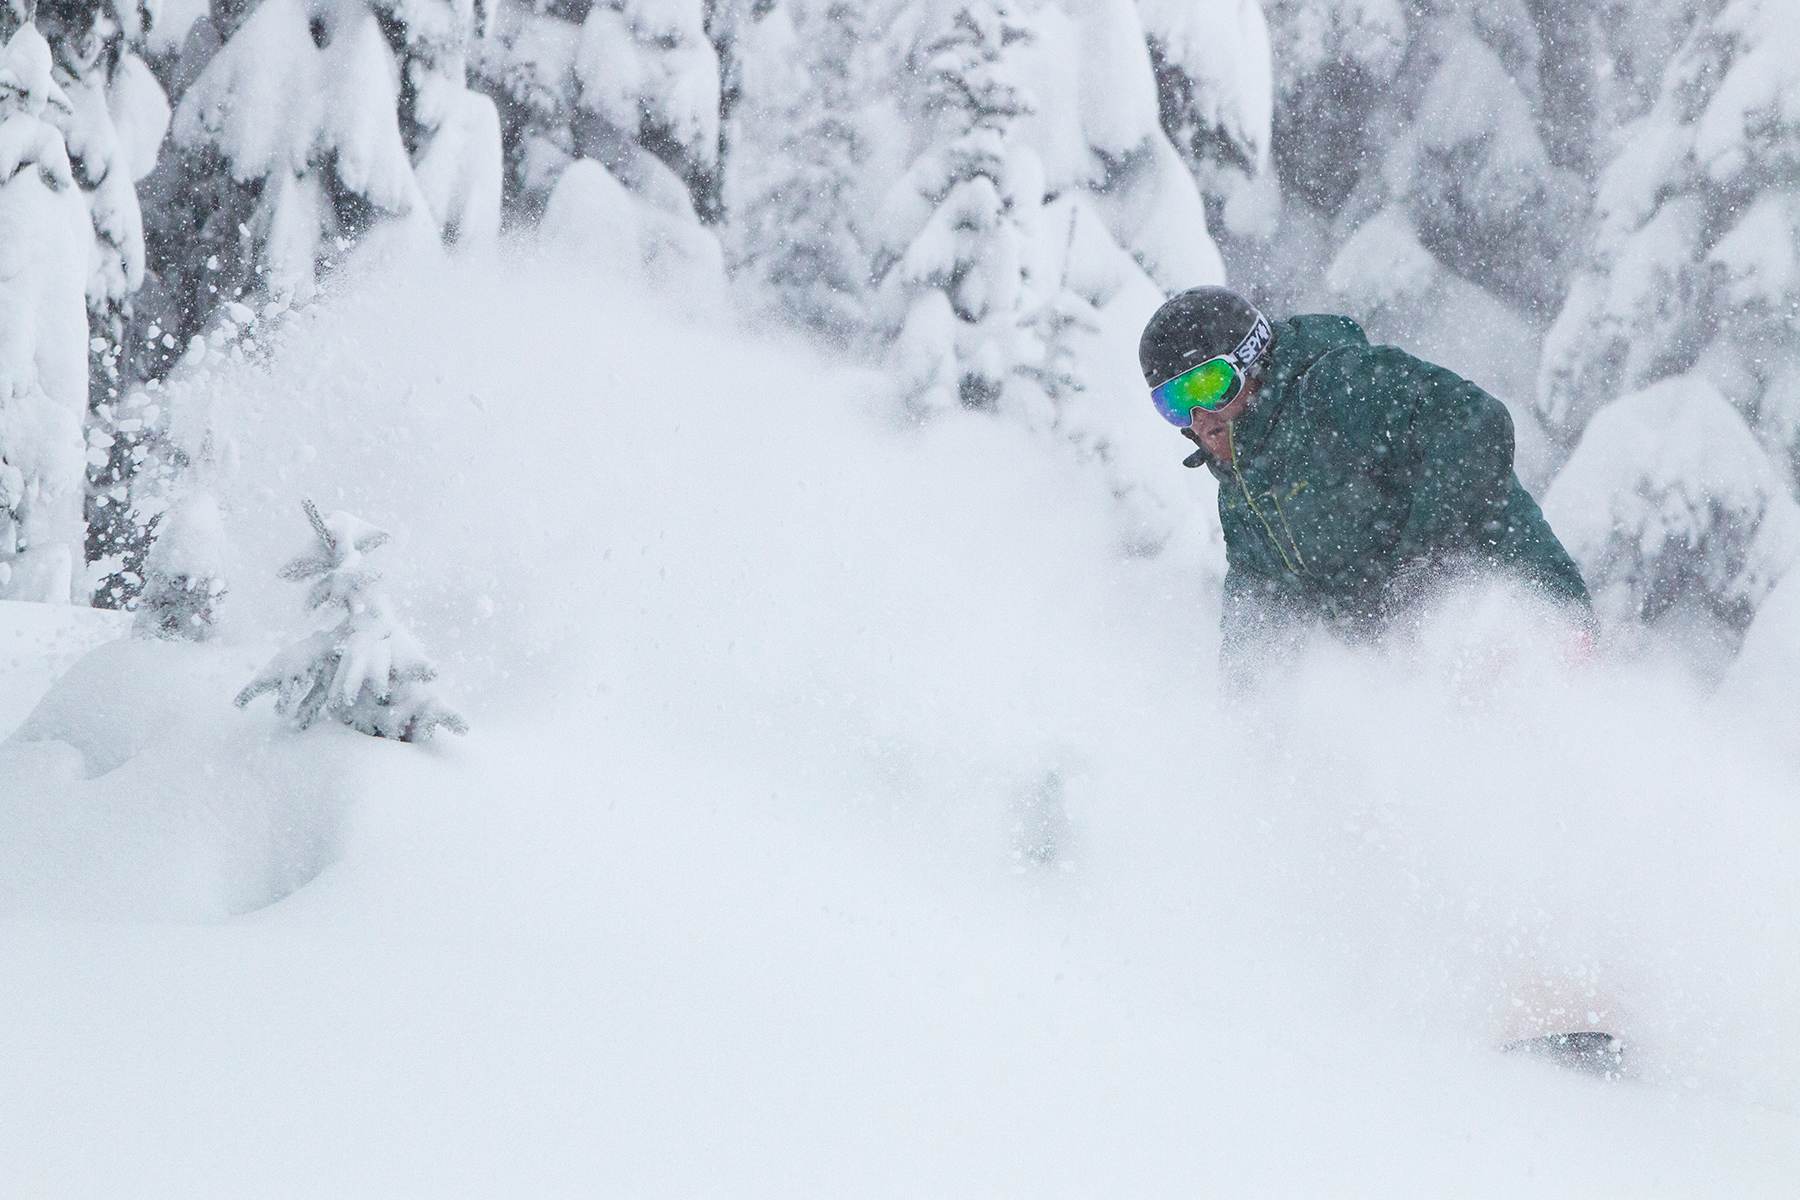 Powder on November 15, 2017.